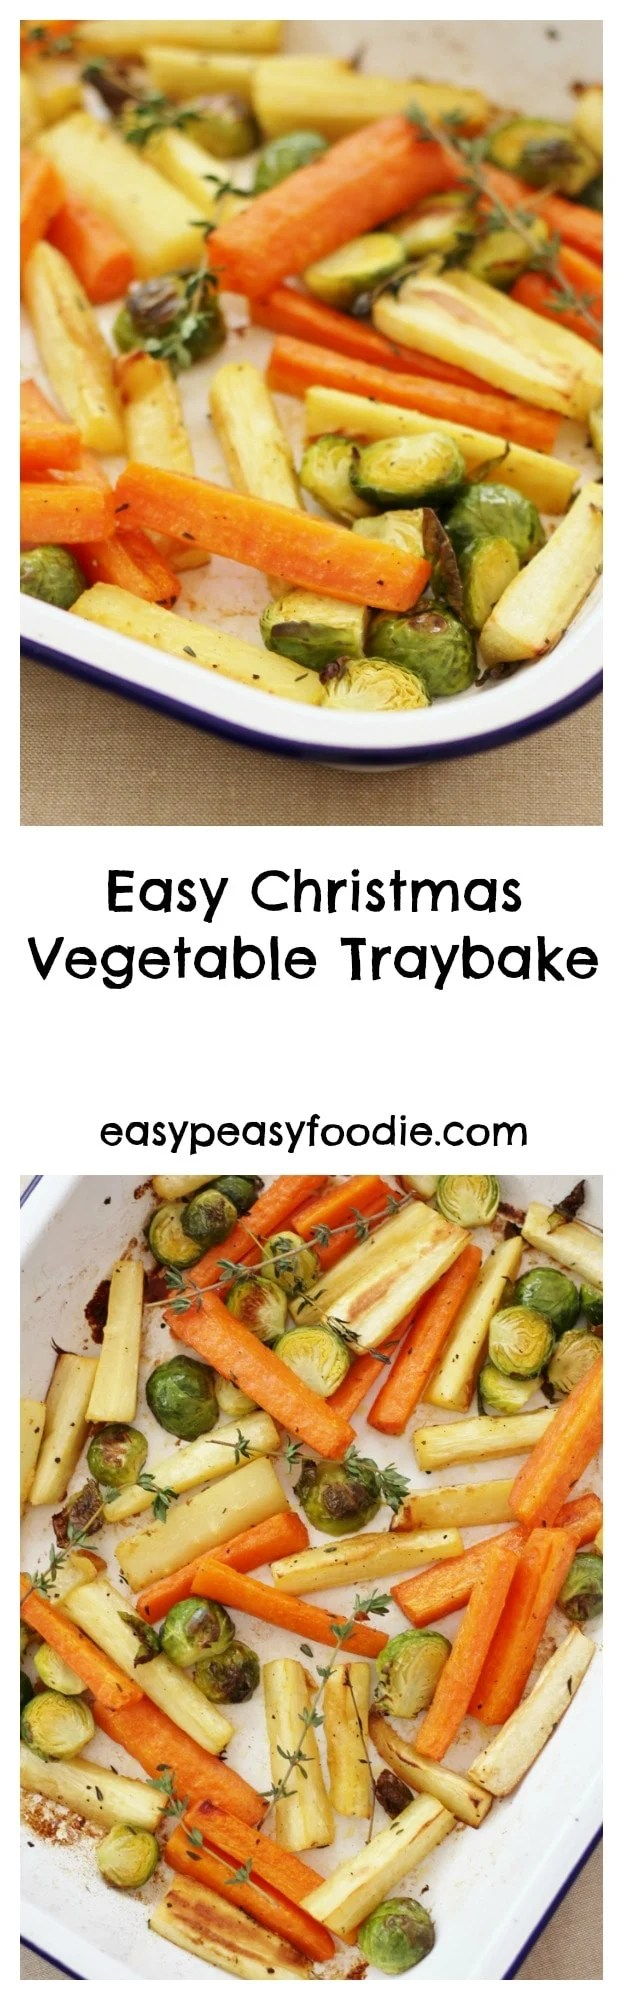 In my quest to make cooking Christmas dinner less stressful, I have createdthis Easy Christmas Vegetable Traybake. Roasting the parsnips, carrots and sprouts all together in one tray means you can relax and have a glass of bubbly instead of juggling pots and pans like a mad thing this Christmas. #christmas #vegetables #christmasvegetables #traybake #christmastraybake #easychristmasvegetables #stressfreechristmas #easychristmas #easypeasychristmas #easypeasyfoodie #freefromgang #cookblogshare